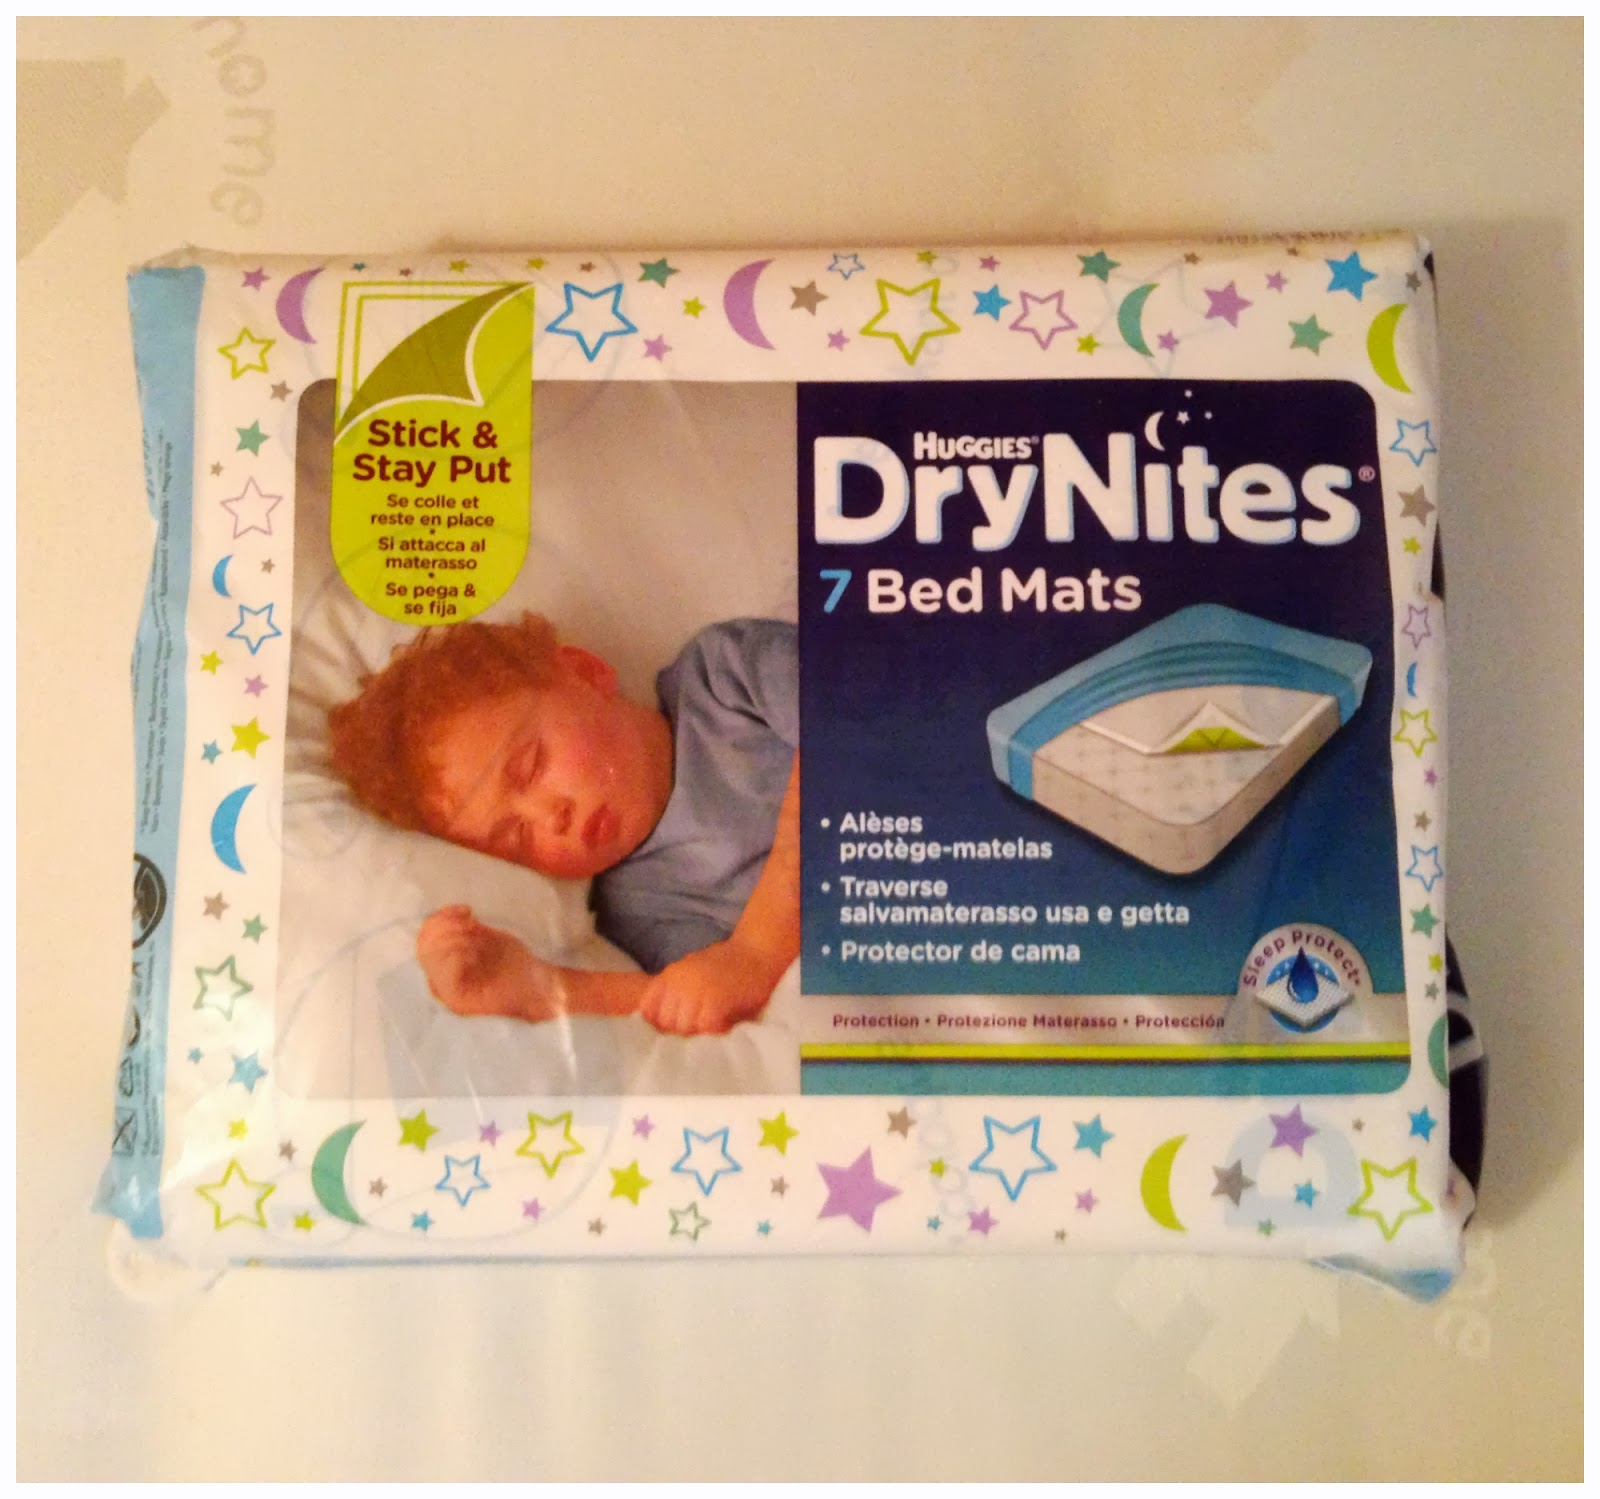 Huggies Drynites Bed Mats Review